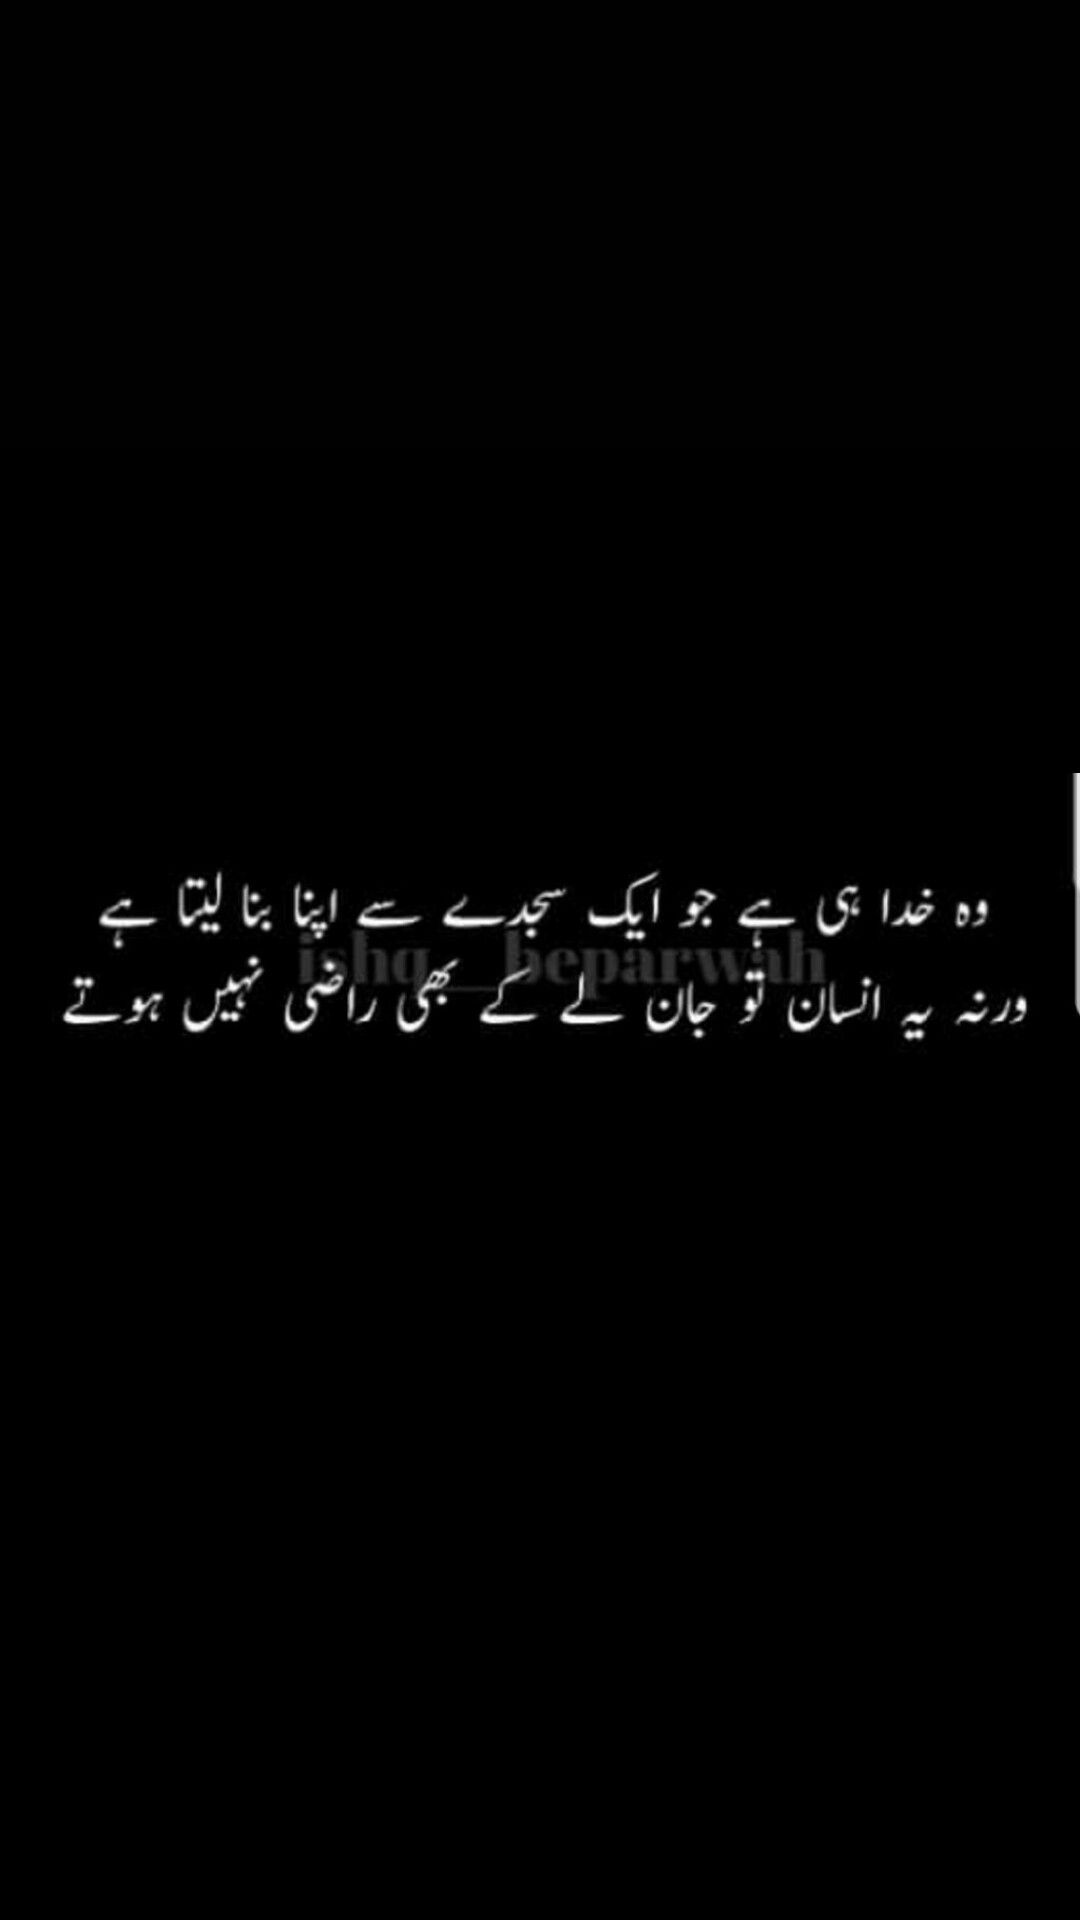 Pin by A.B C. on Urdu | Deep words, Islamic quotes, Poetry ...